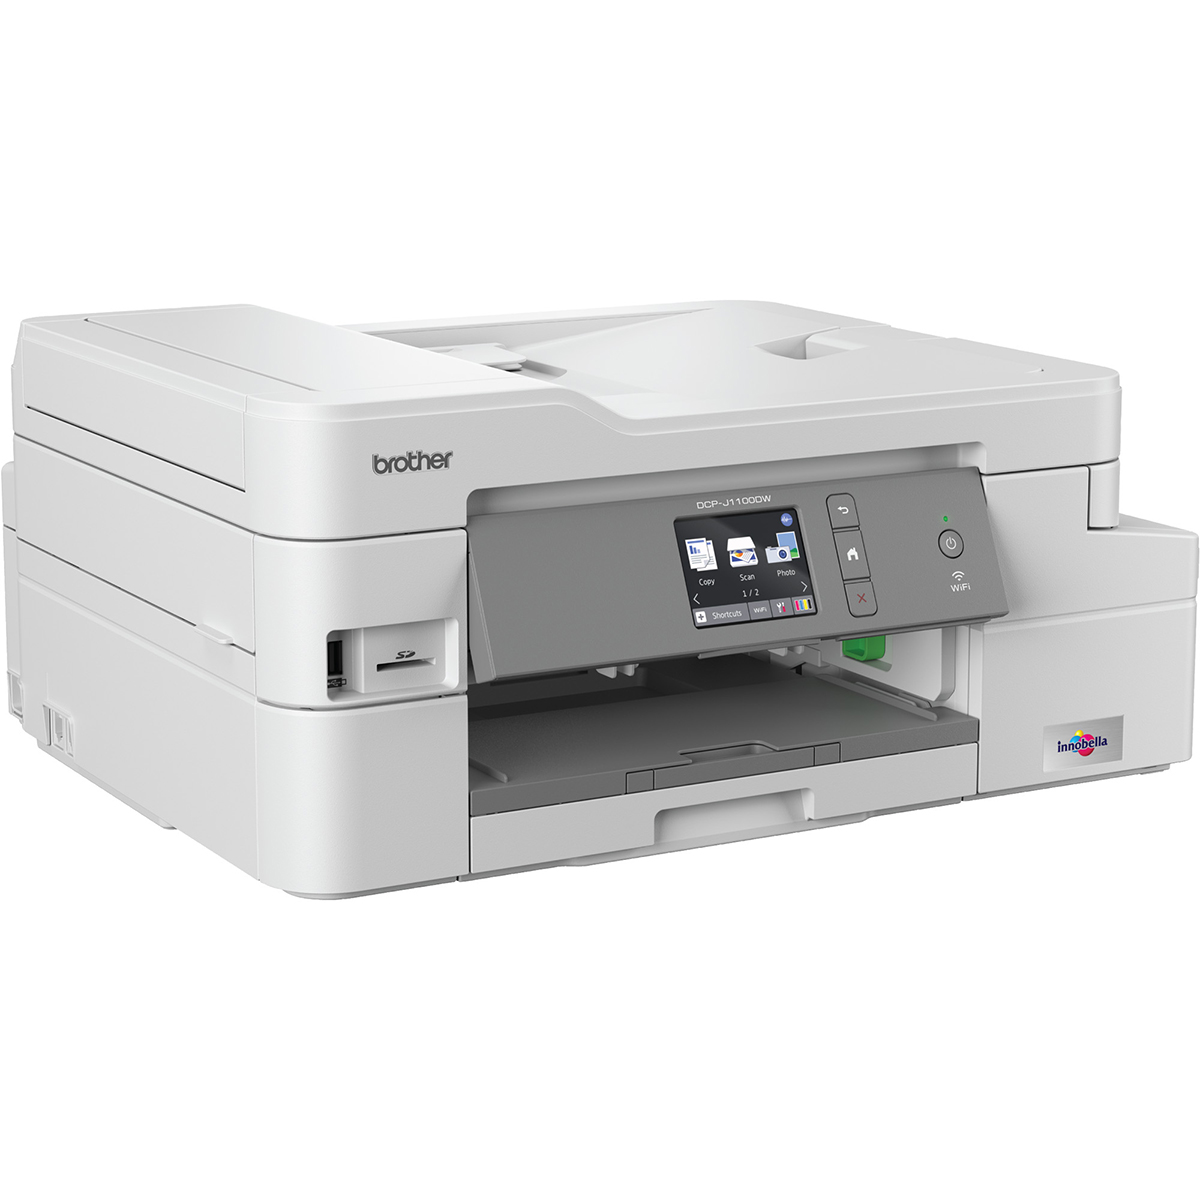 Brother DCP-J1100DW Colour Inkjet Multifunction